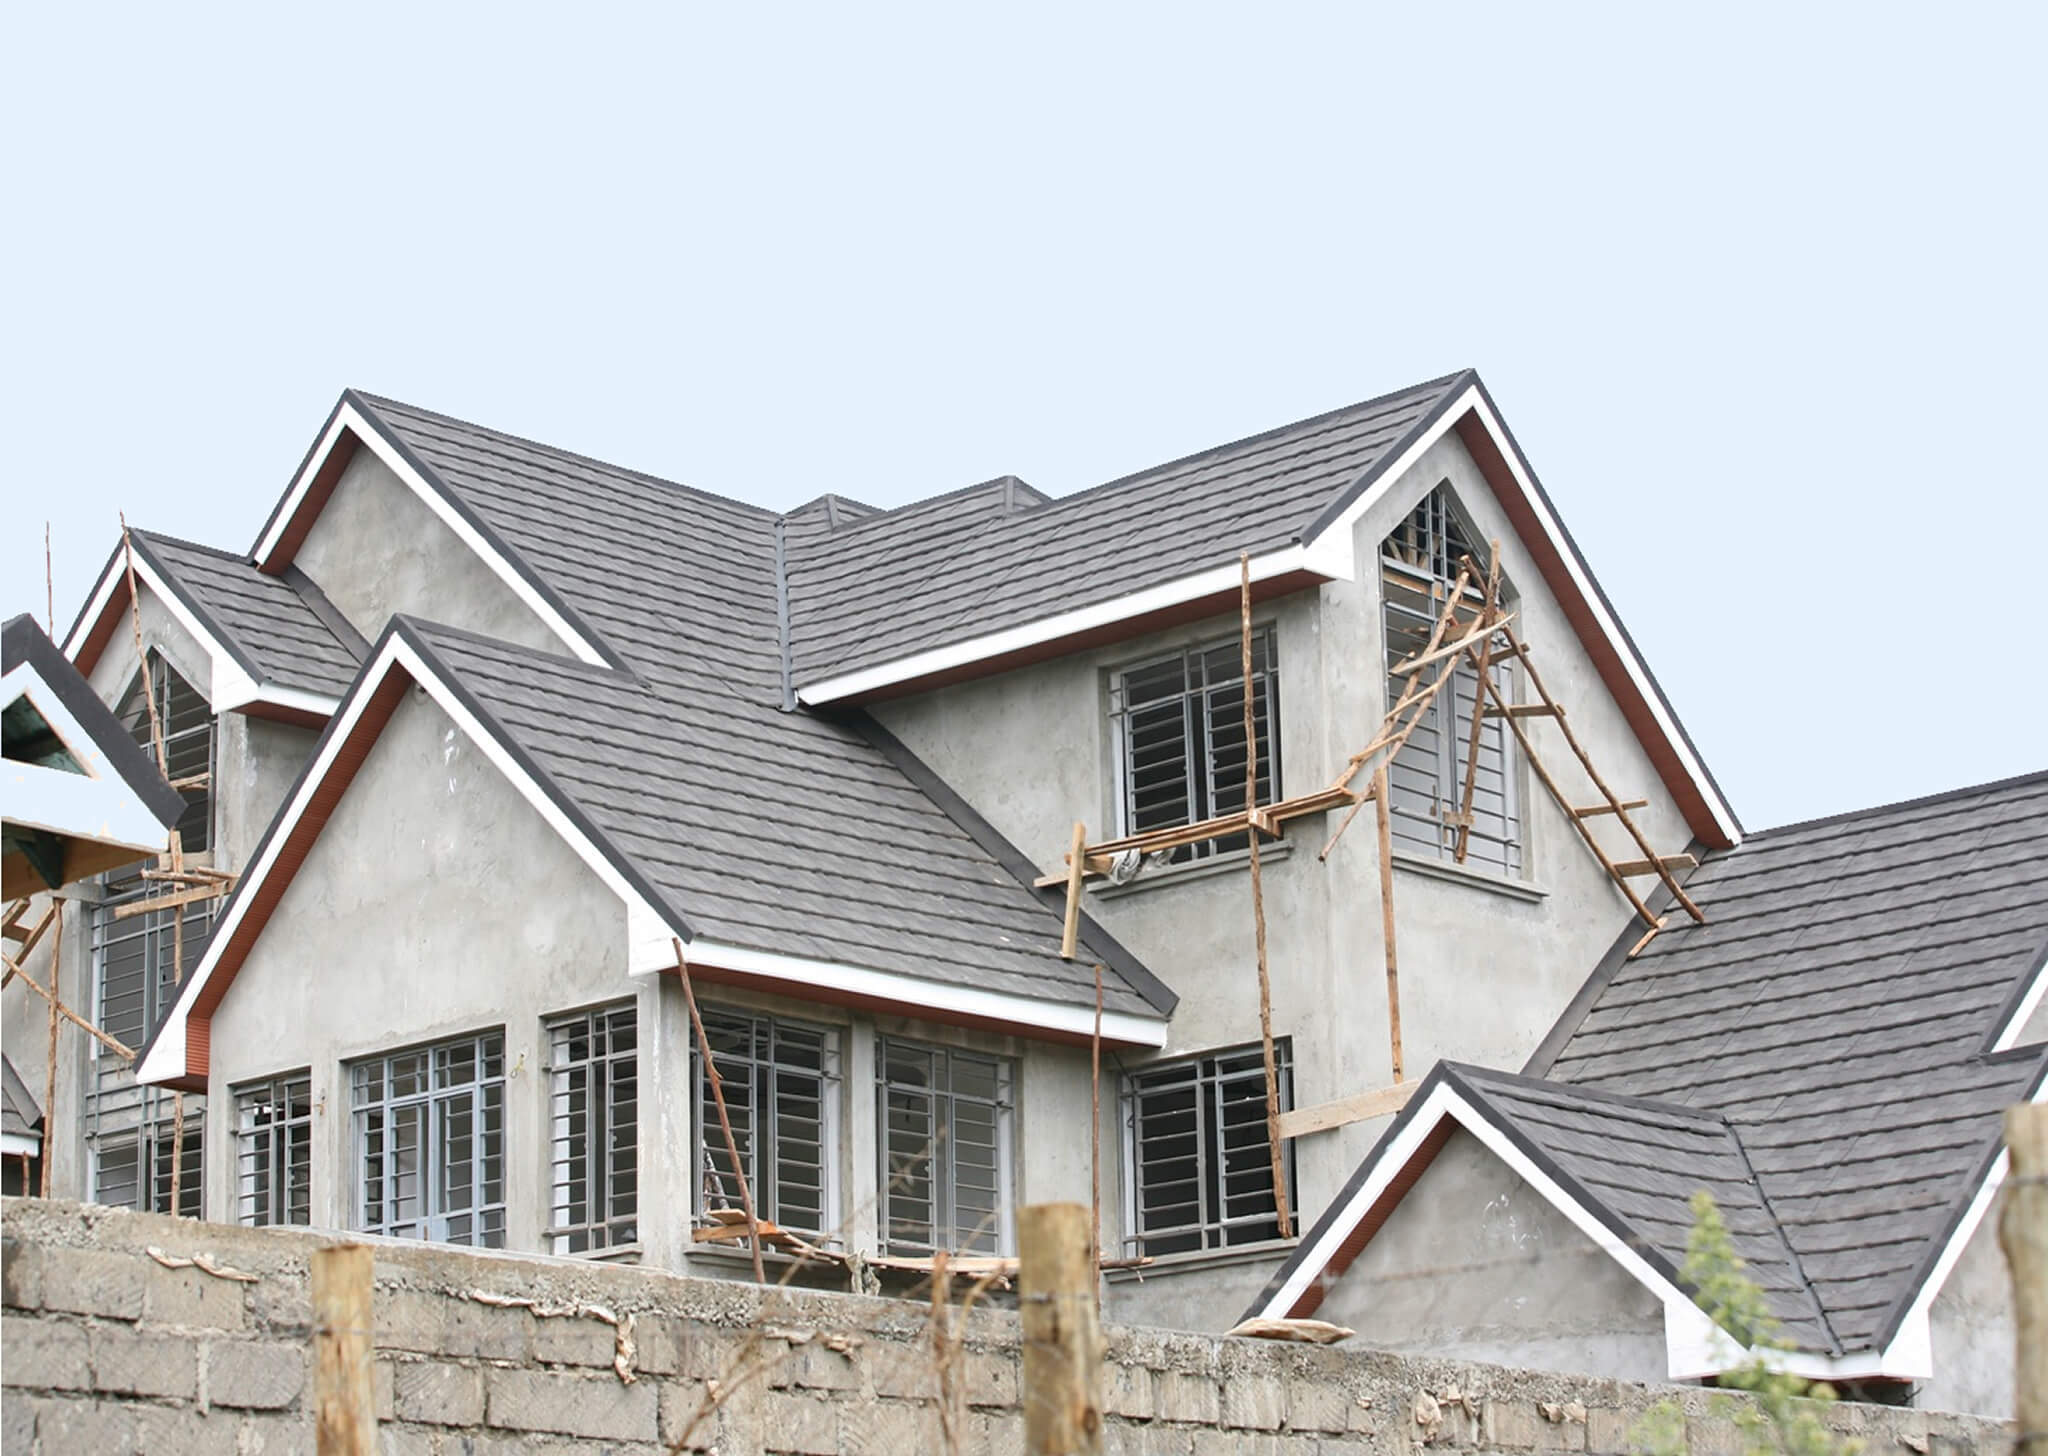 Modern Stone Coated Roofing Tiles